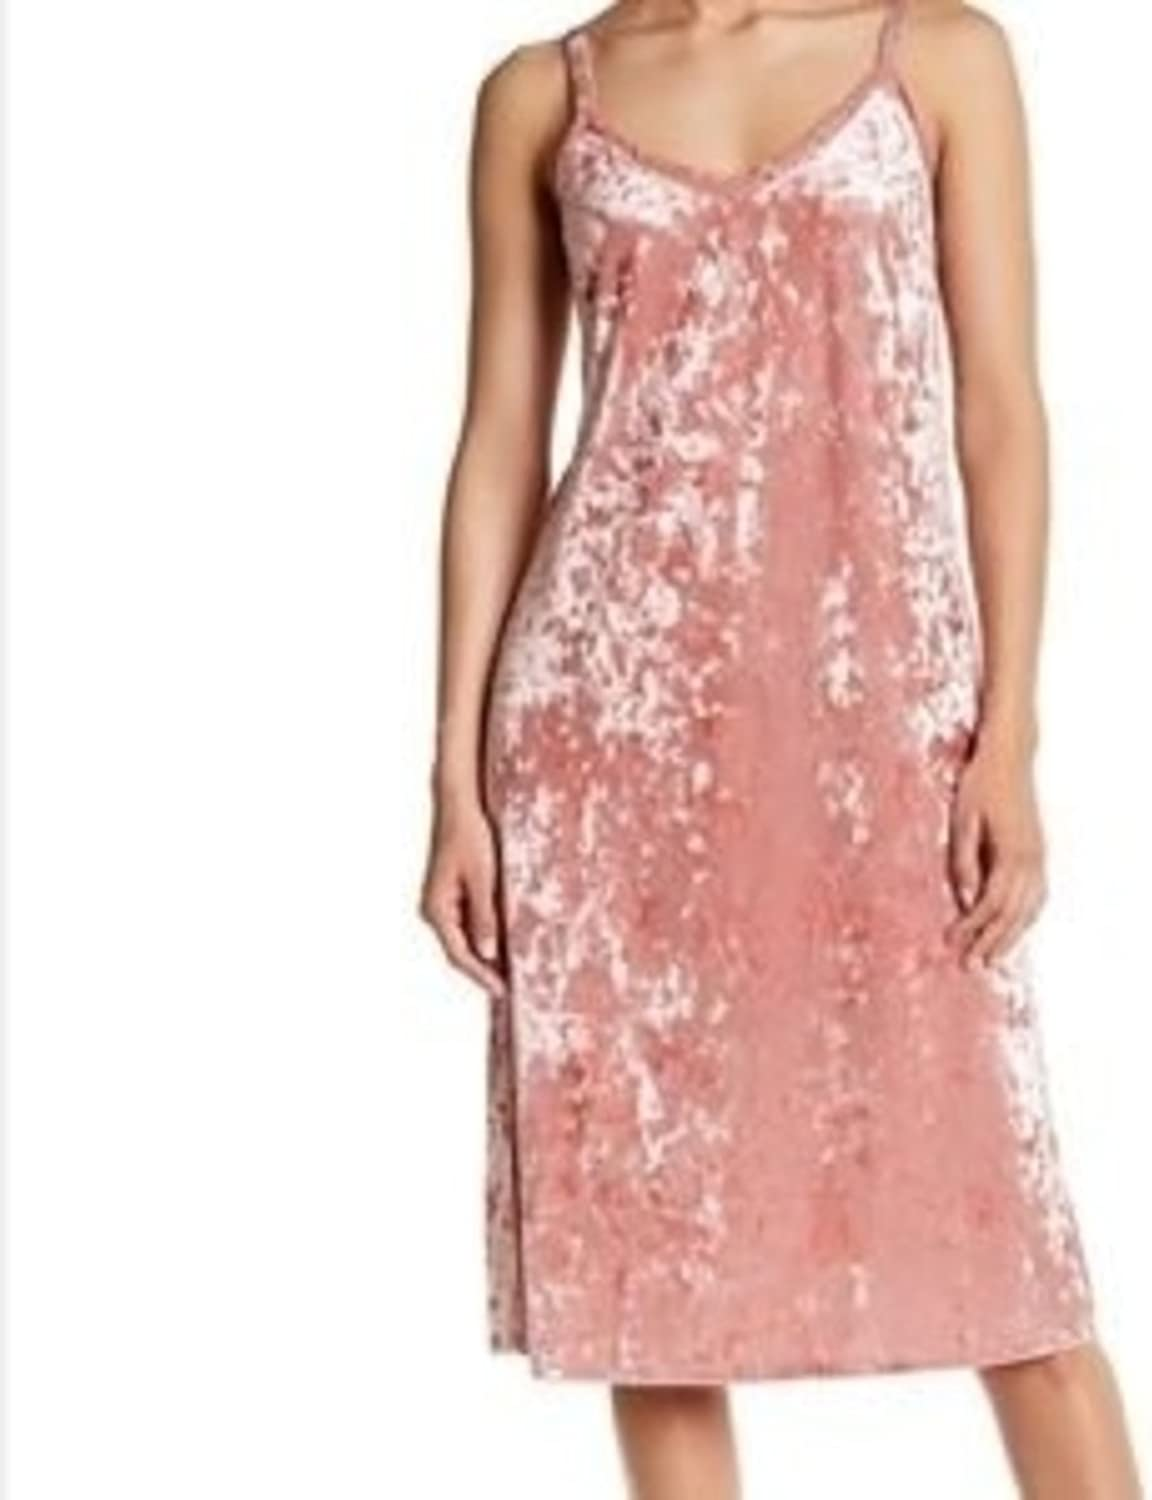 Bobeau Dress S Small Pink Lace Trim Velvet Slip Slits Cocktail Party Holiday Womens